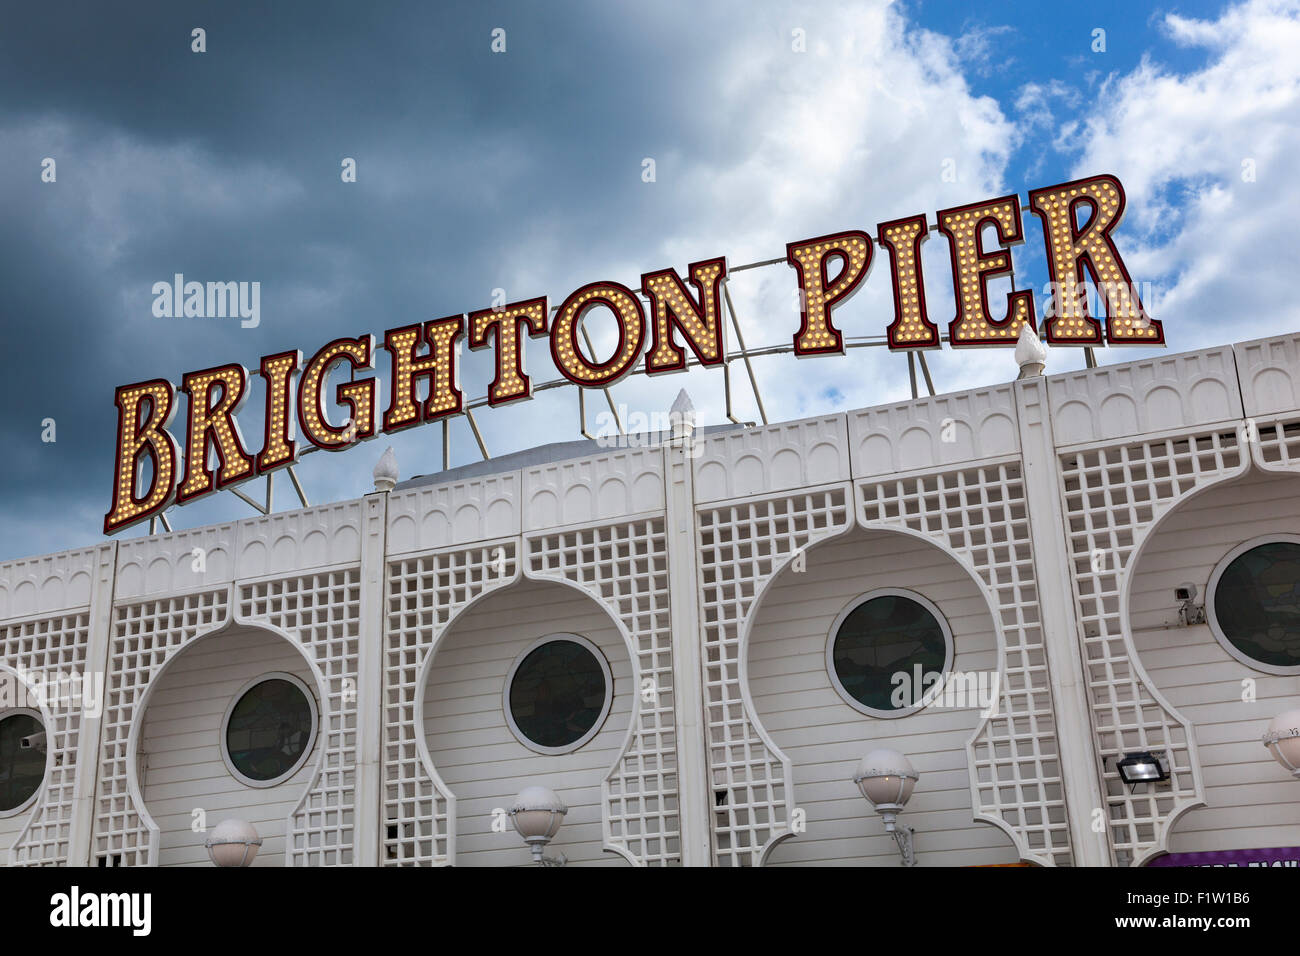 Brighton Pier sign, Brighton, UK - Stock Image